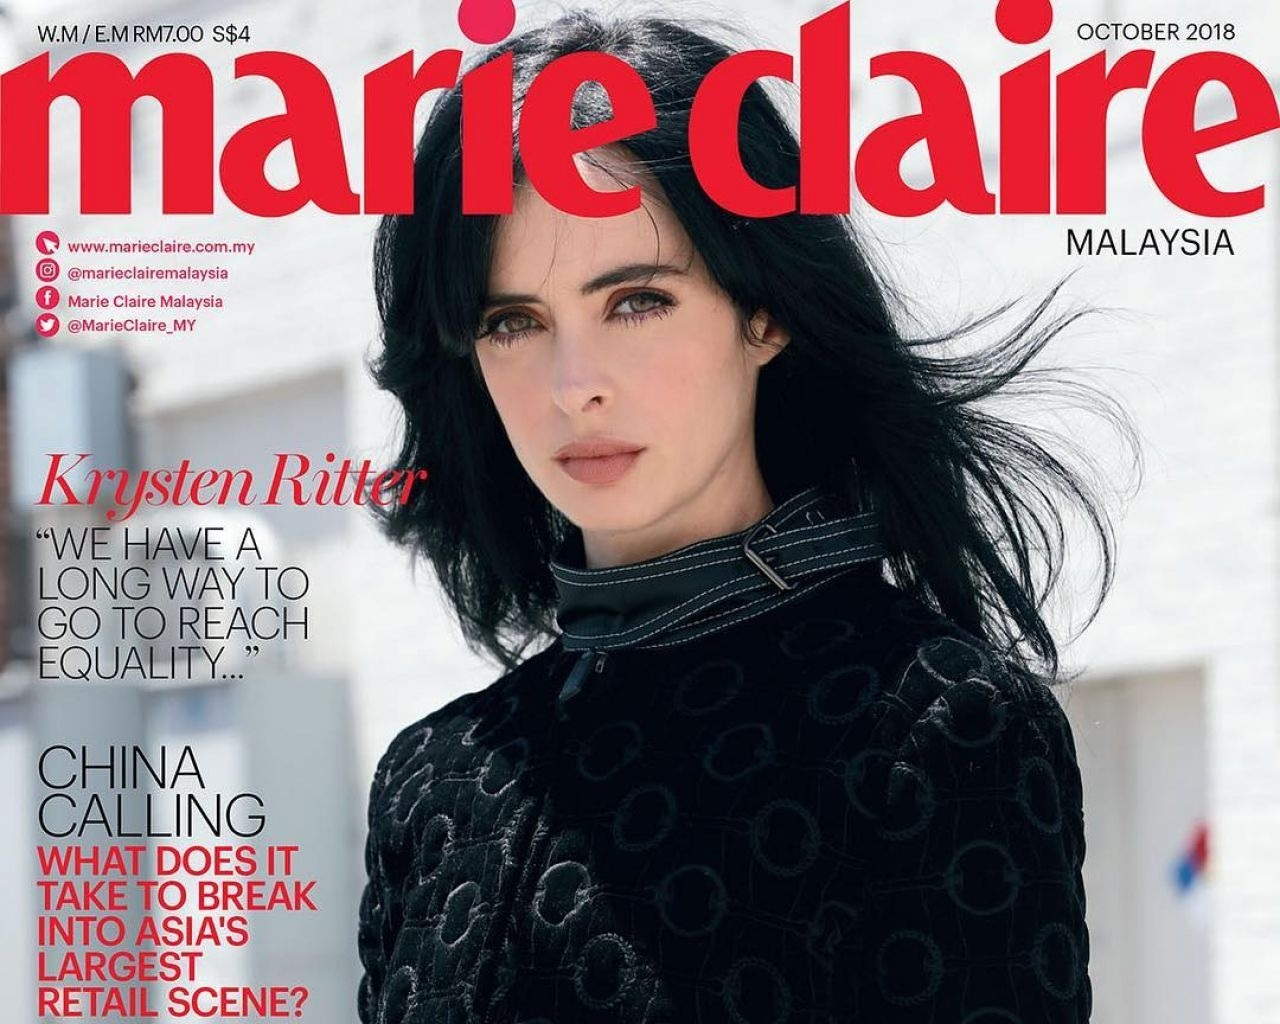 krysten-ritter-marie-claire-malaysia-october-2018-0.jpg